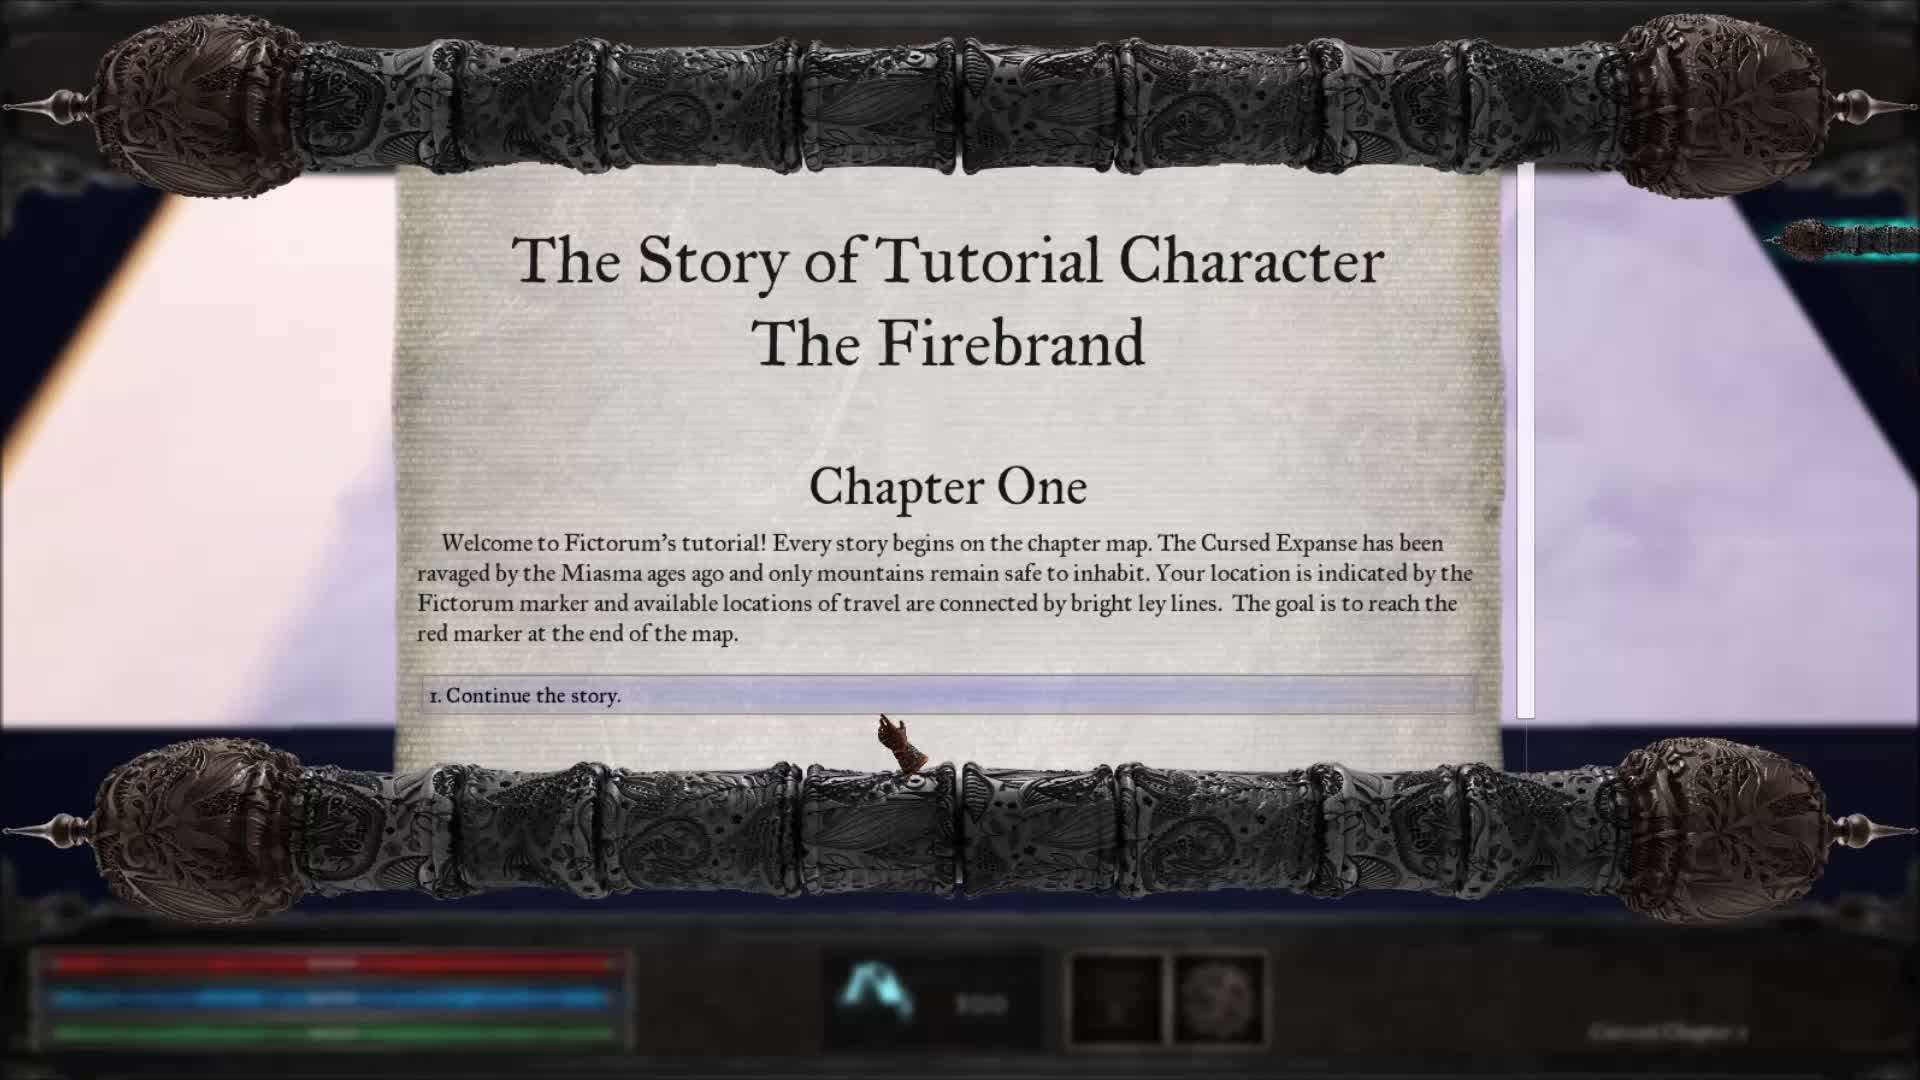 Conqueror Tutorial Gifs Search | Search & Share on Homdor